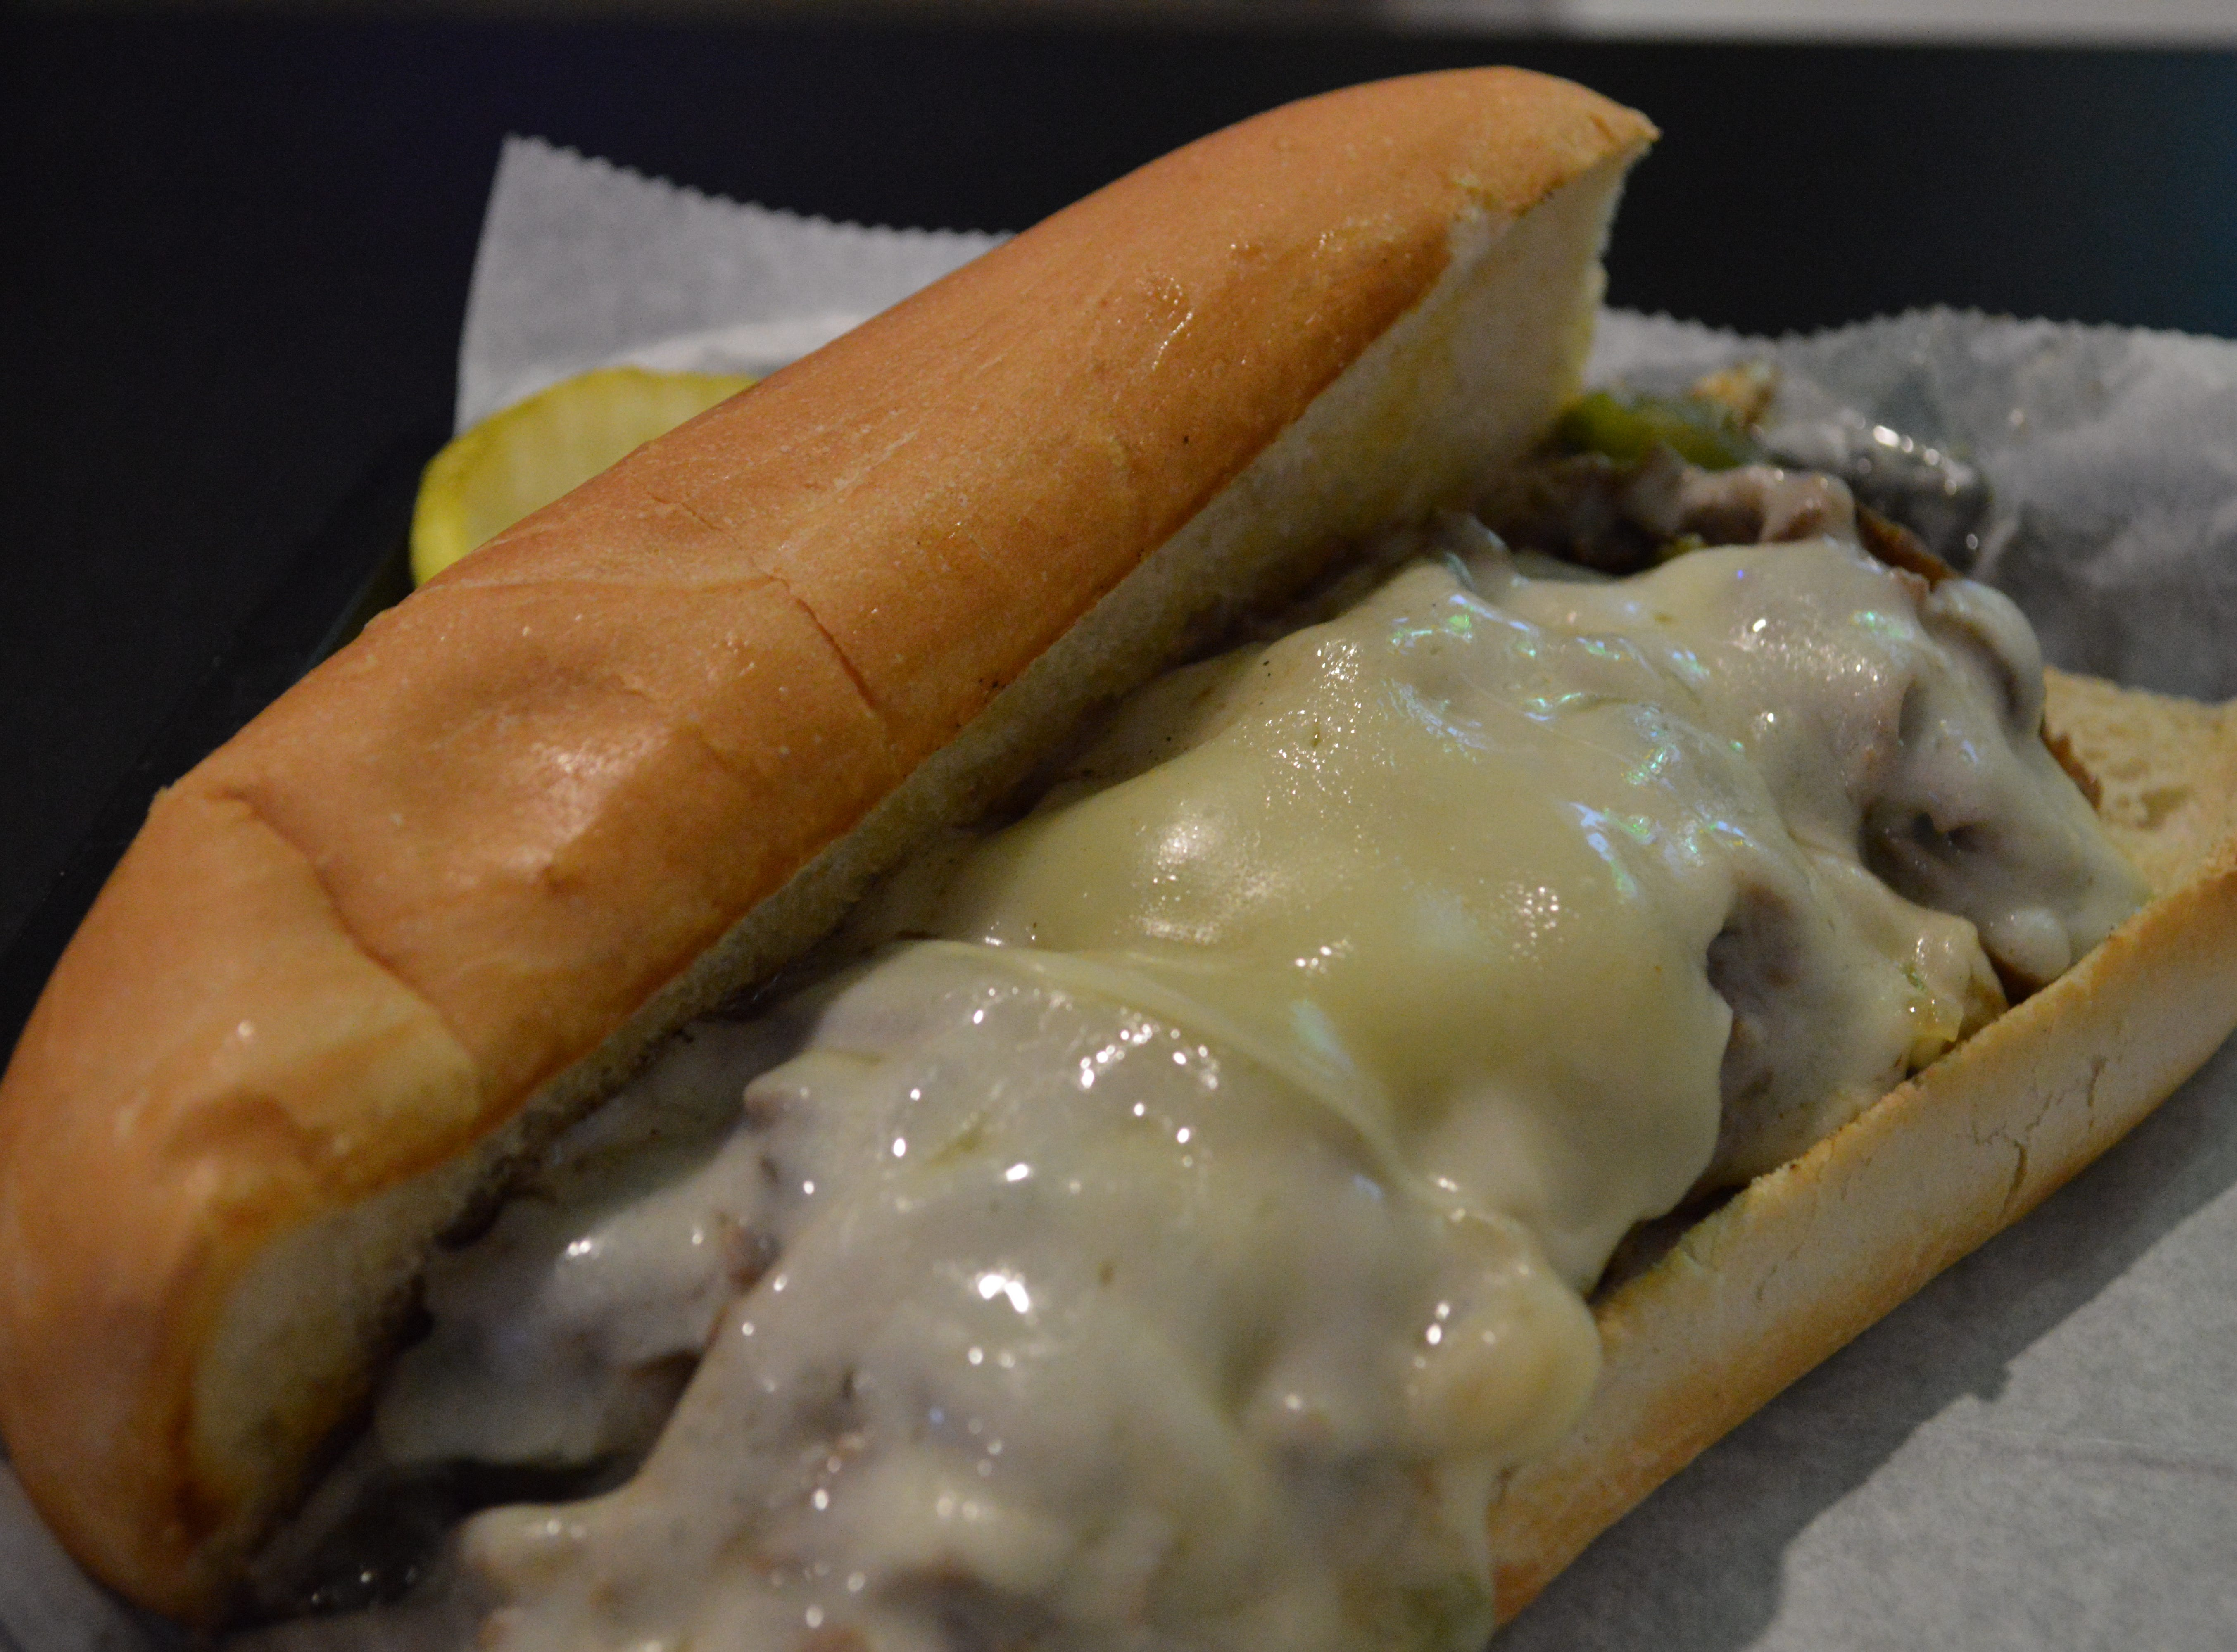 John Schultz, owner of Light Palace Pub and Grill, said his favorite menu item is the Philly cheesesteak, which is $7.95. It has steak, cheese, grilled onions, mushrooms, green peppers, mozzarella and provolone. It's served on a grilled bun and comes with a side.